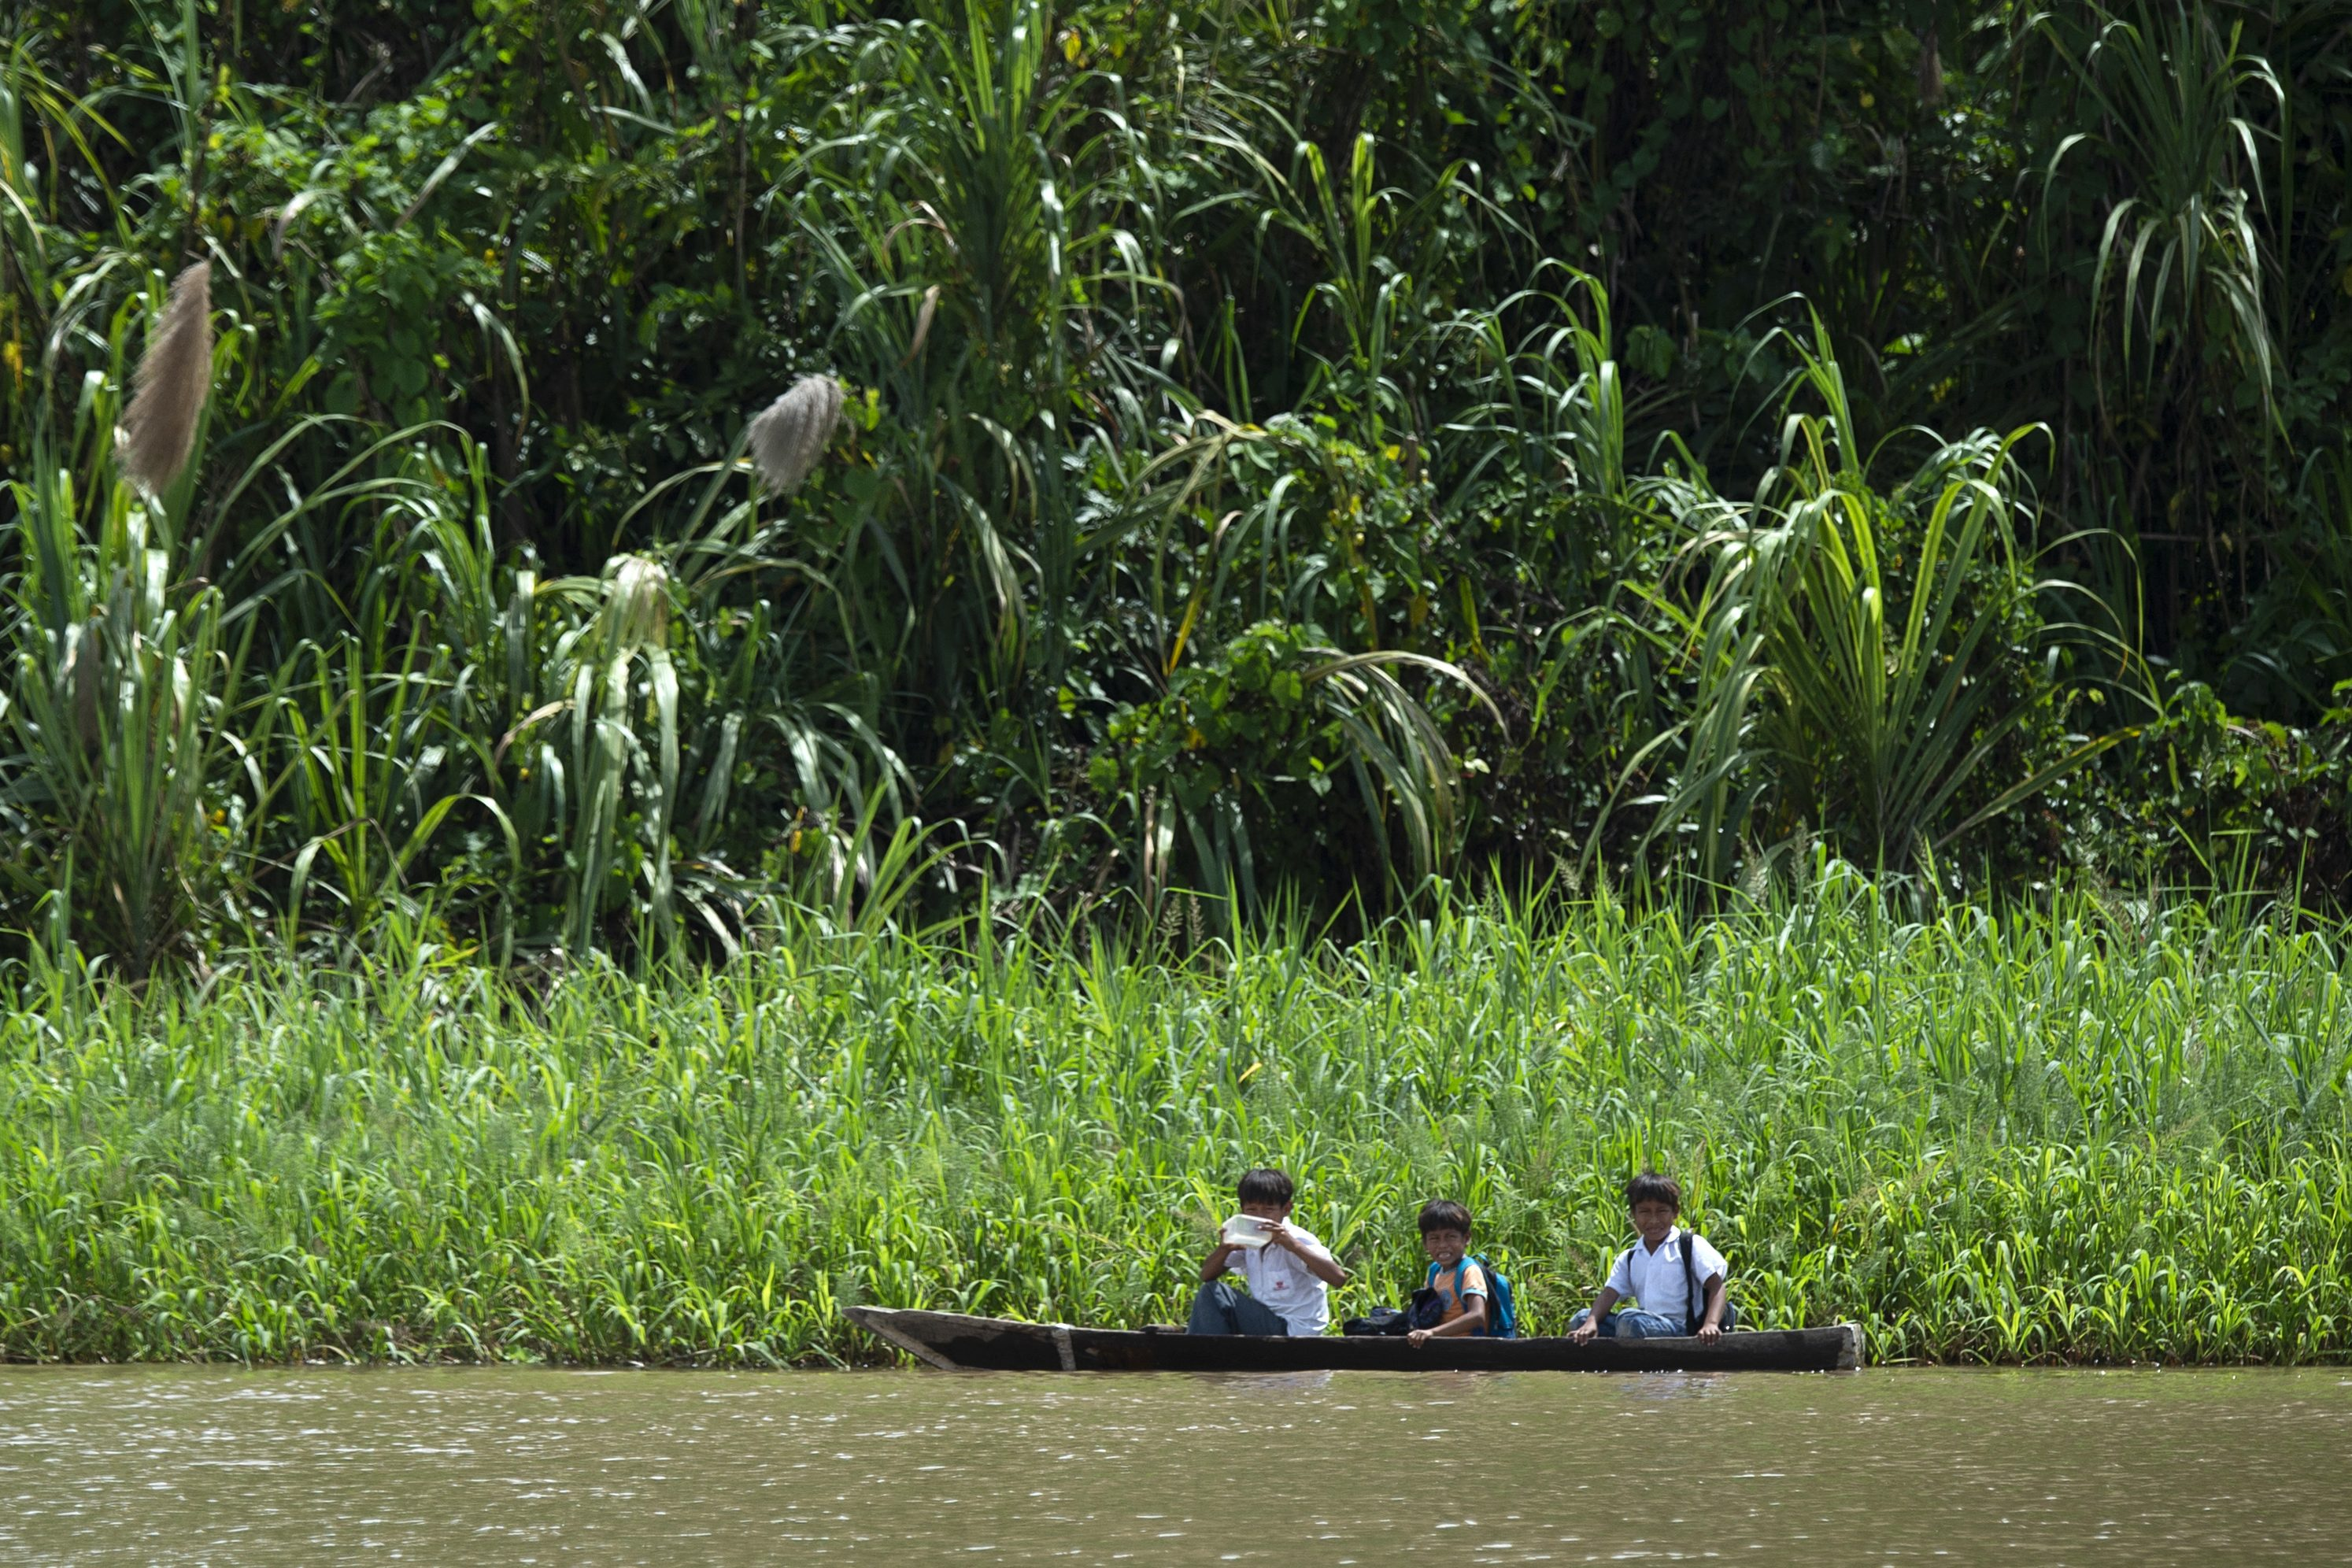 Children go to school by canoe on the Maranon River, a main tributary of the Amazon River, in the Pacaya Samiria National Reserve in May 2019. (Cris Bouroncle/AFP/Getty Images)